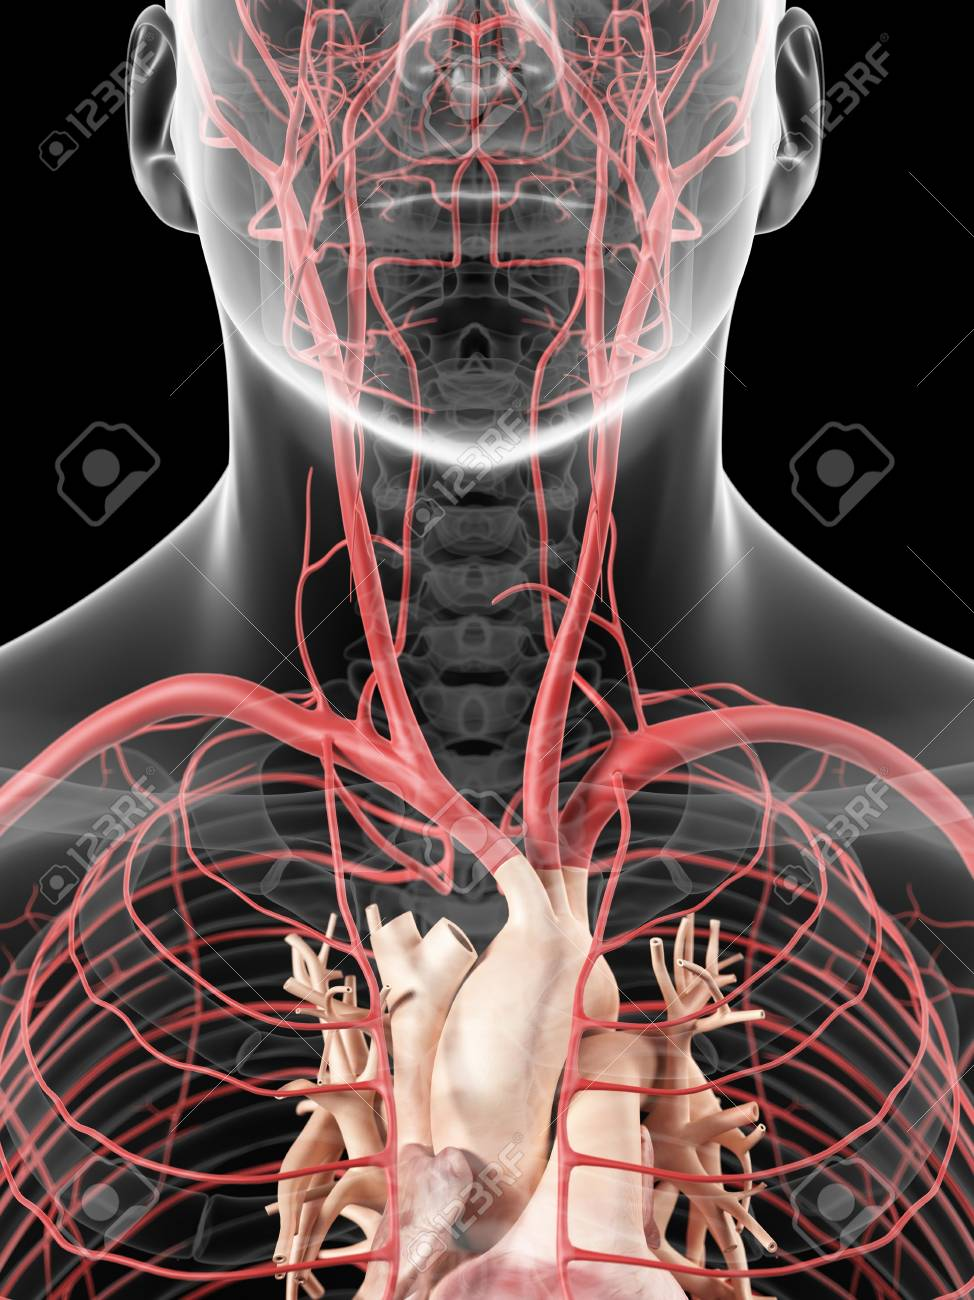 Neck Arteries, Artwork Stock Photo, Picture And Royalty Free Image ...